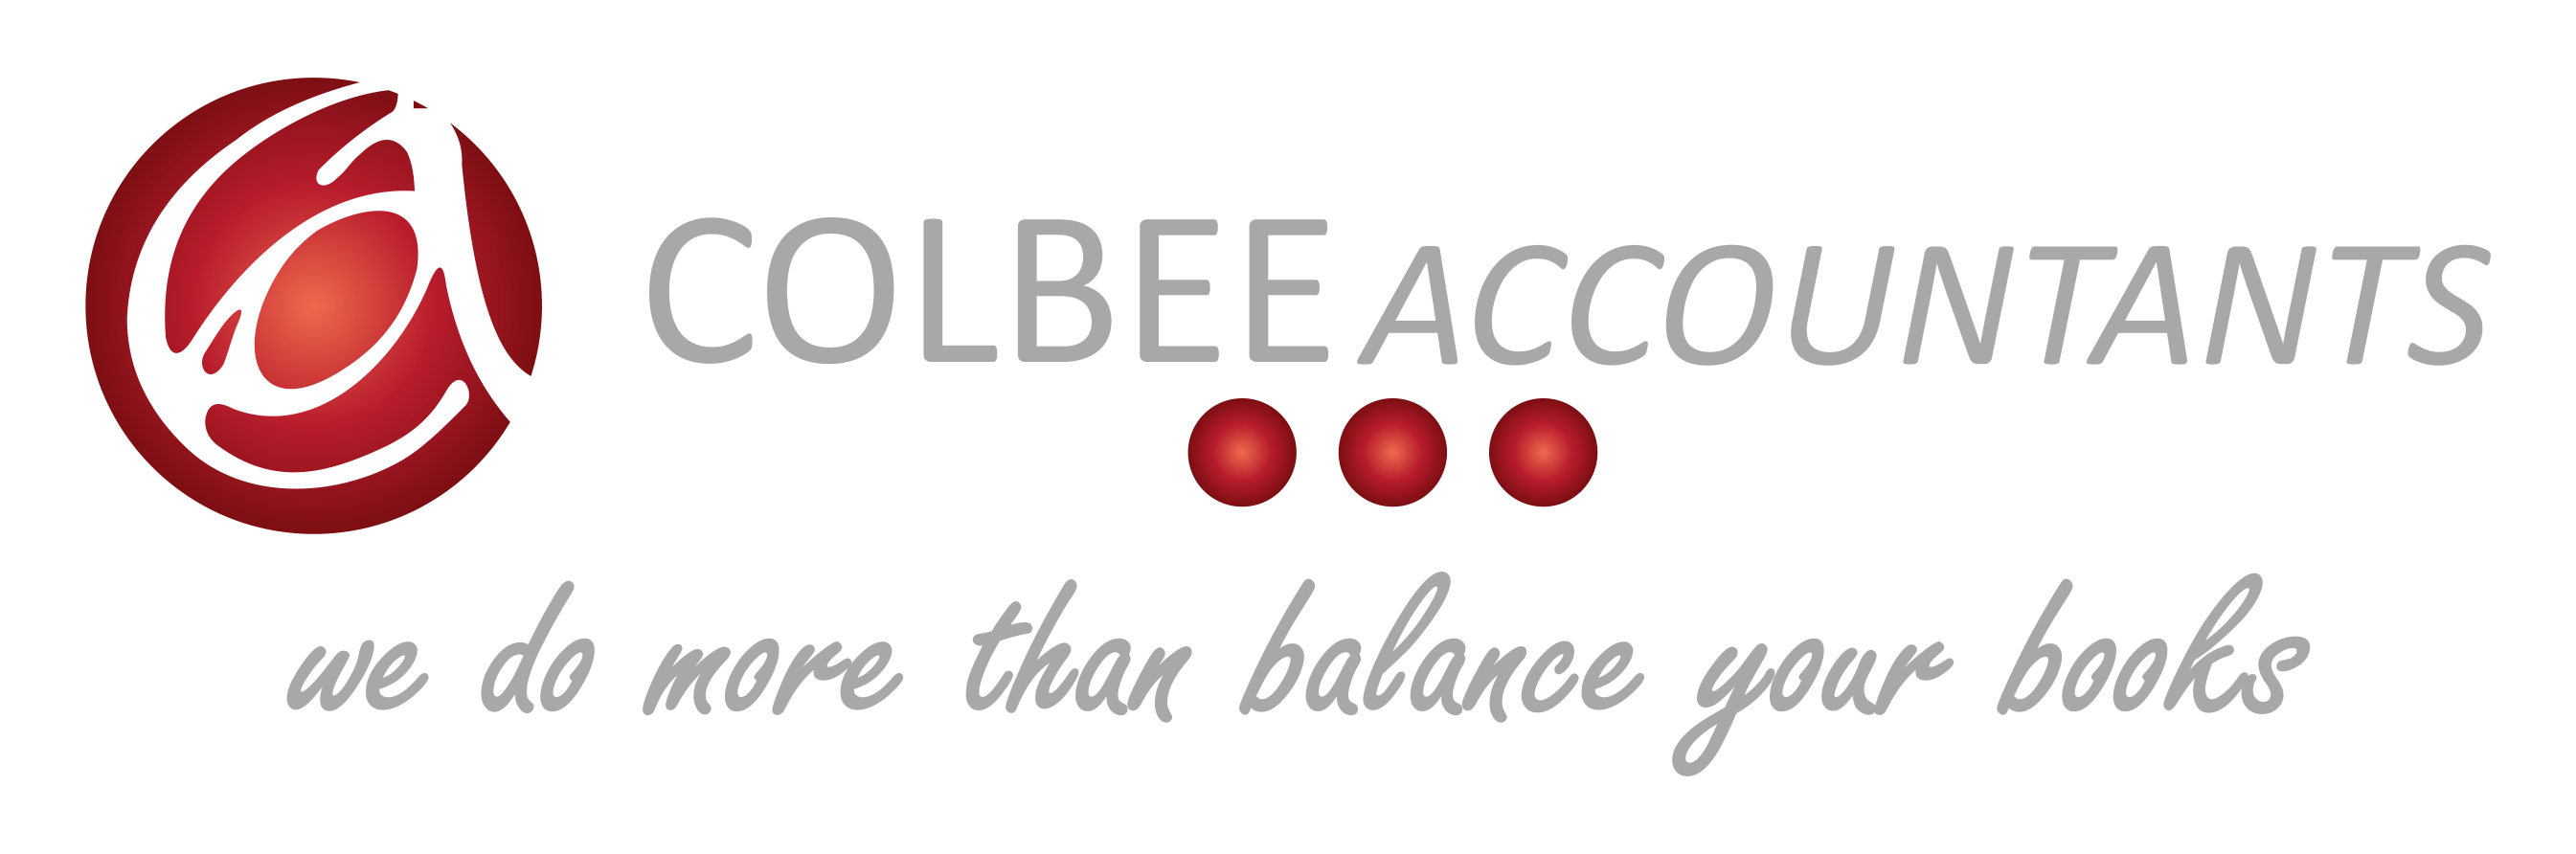 Colbee Accountants